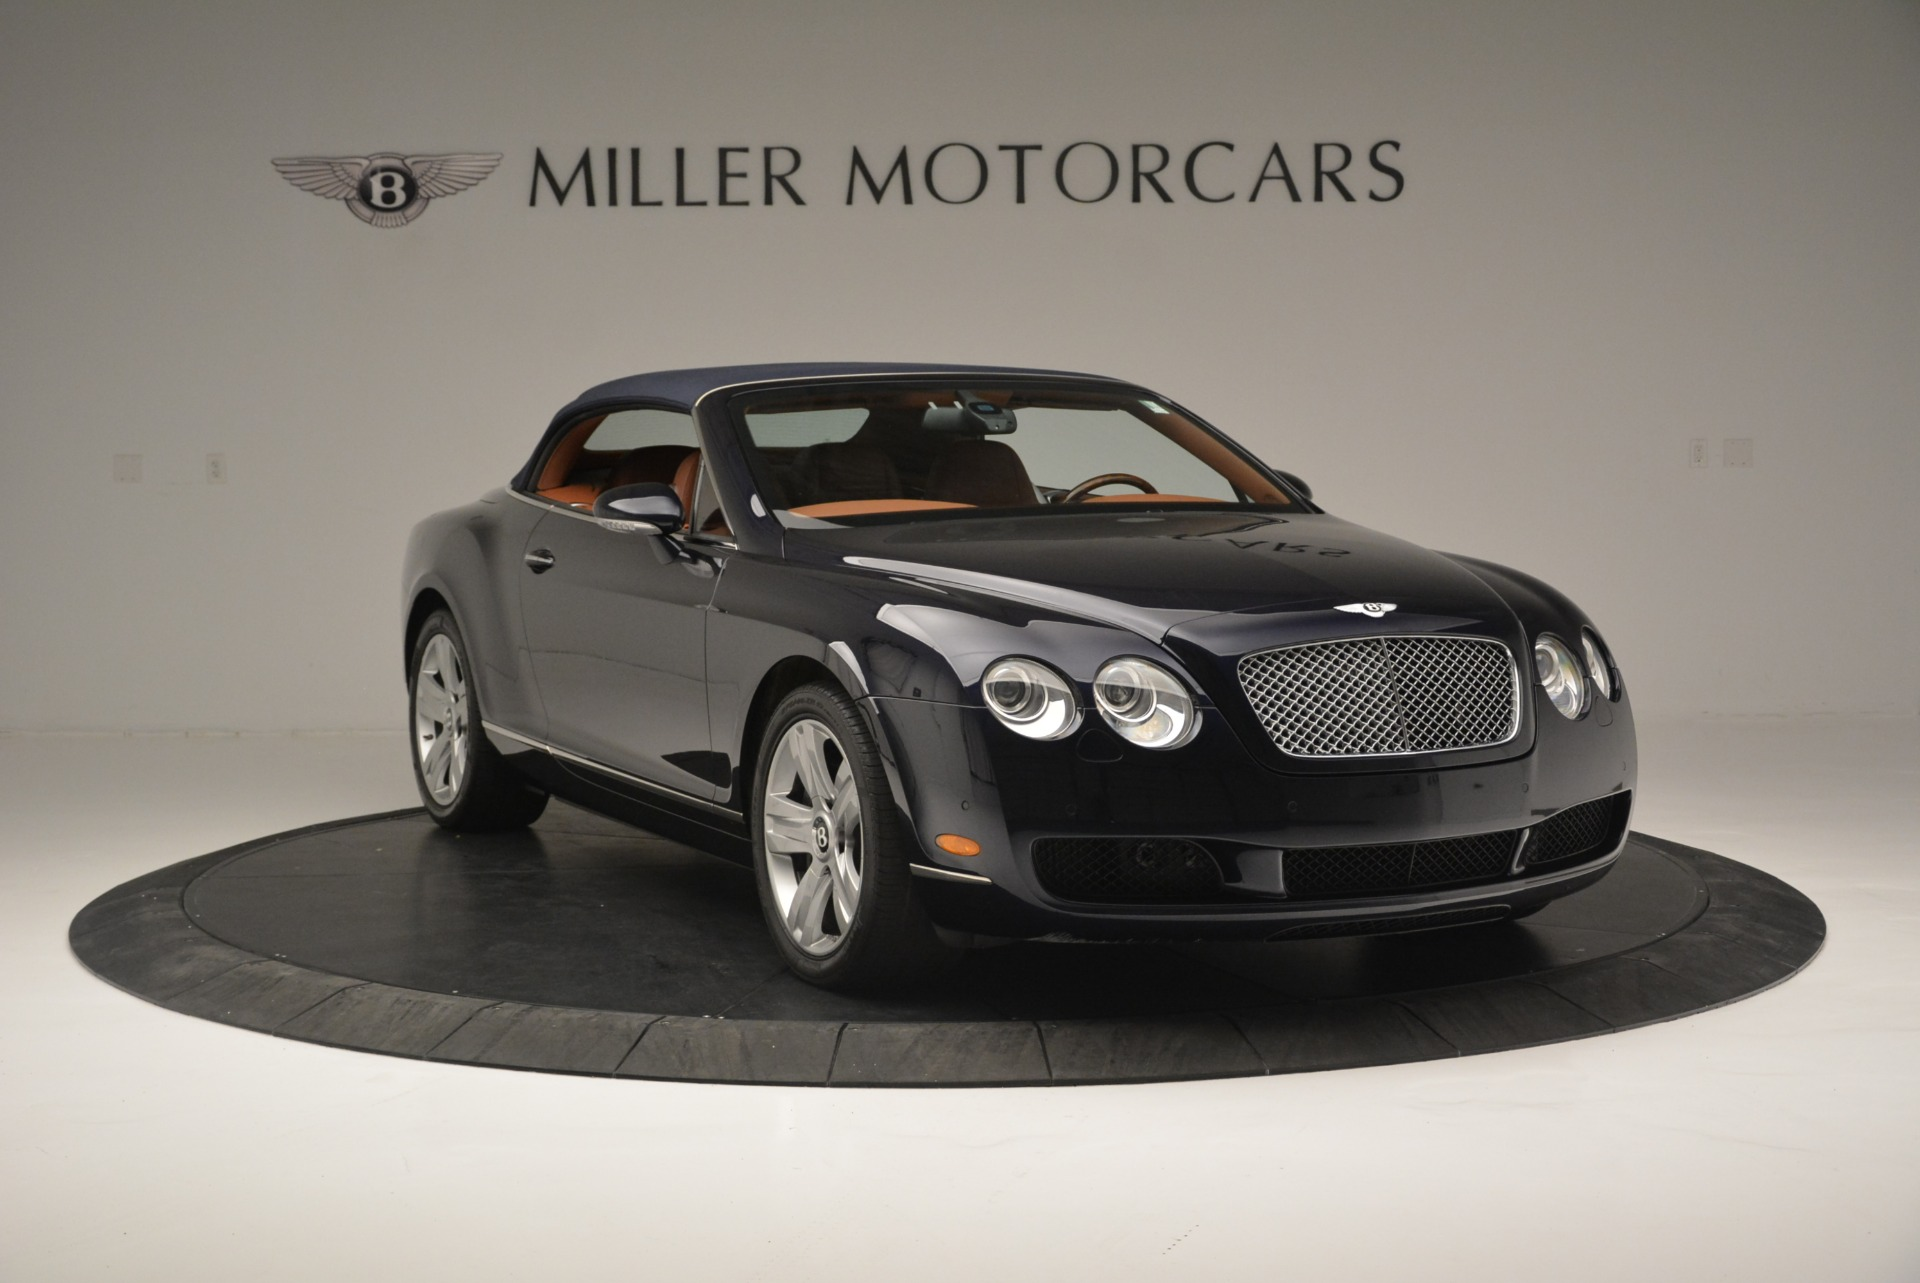 Used 2008 Bentley Continental GTC  For Sale In Westport, CT 2307_p21